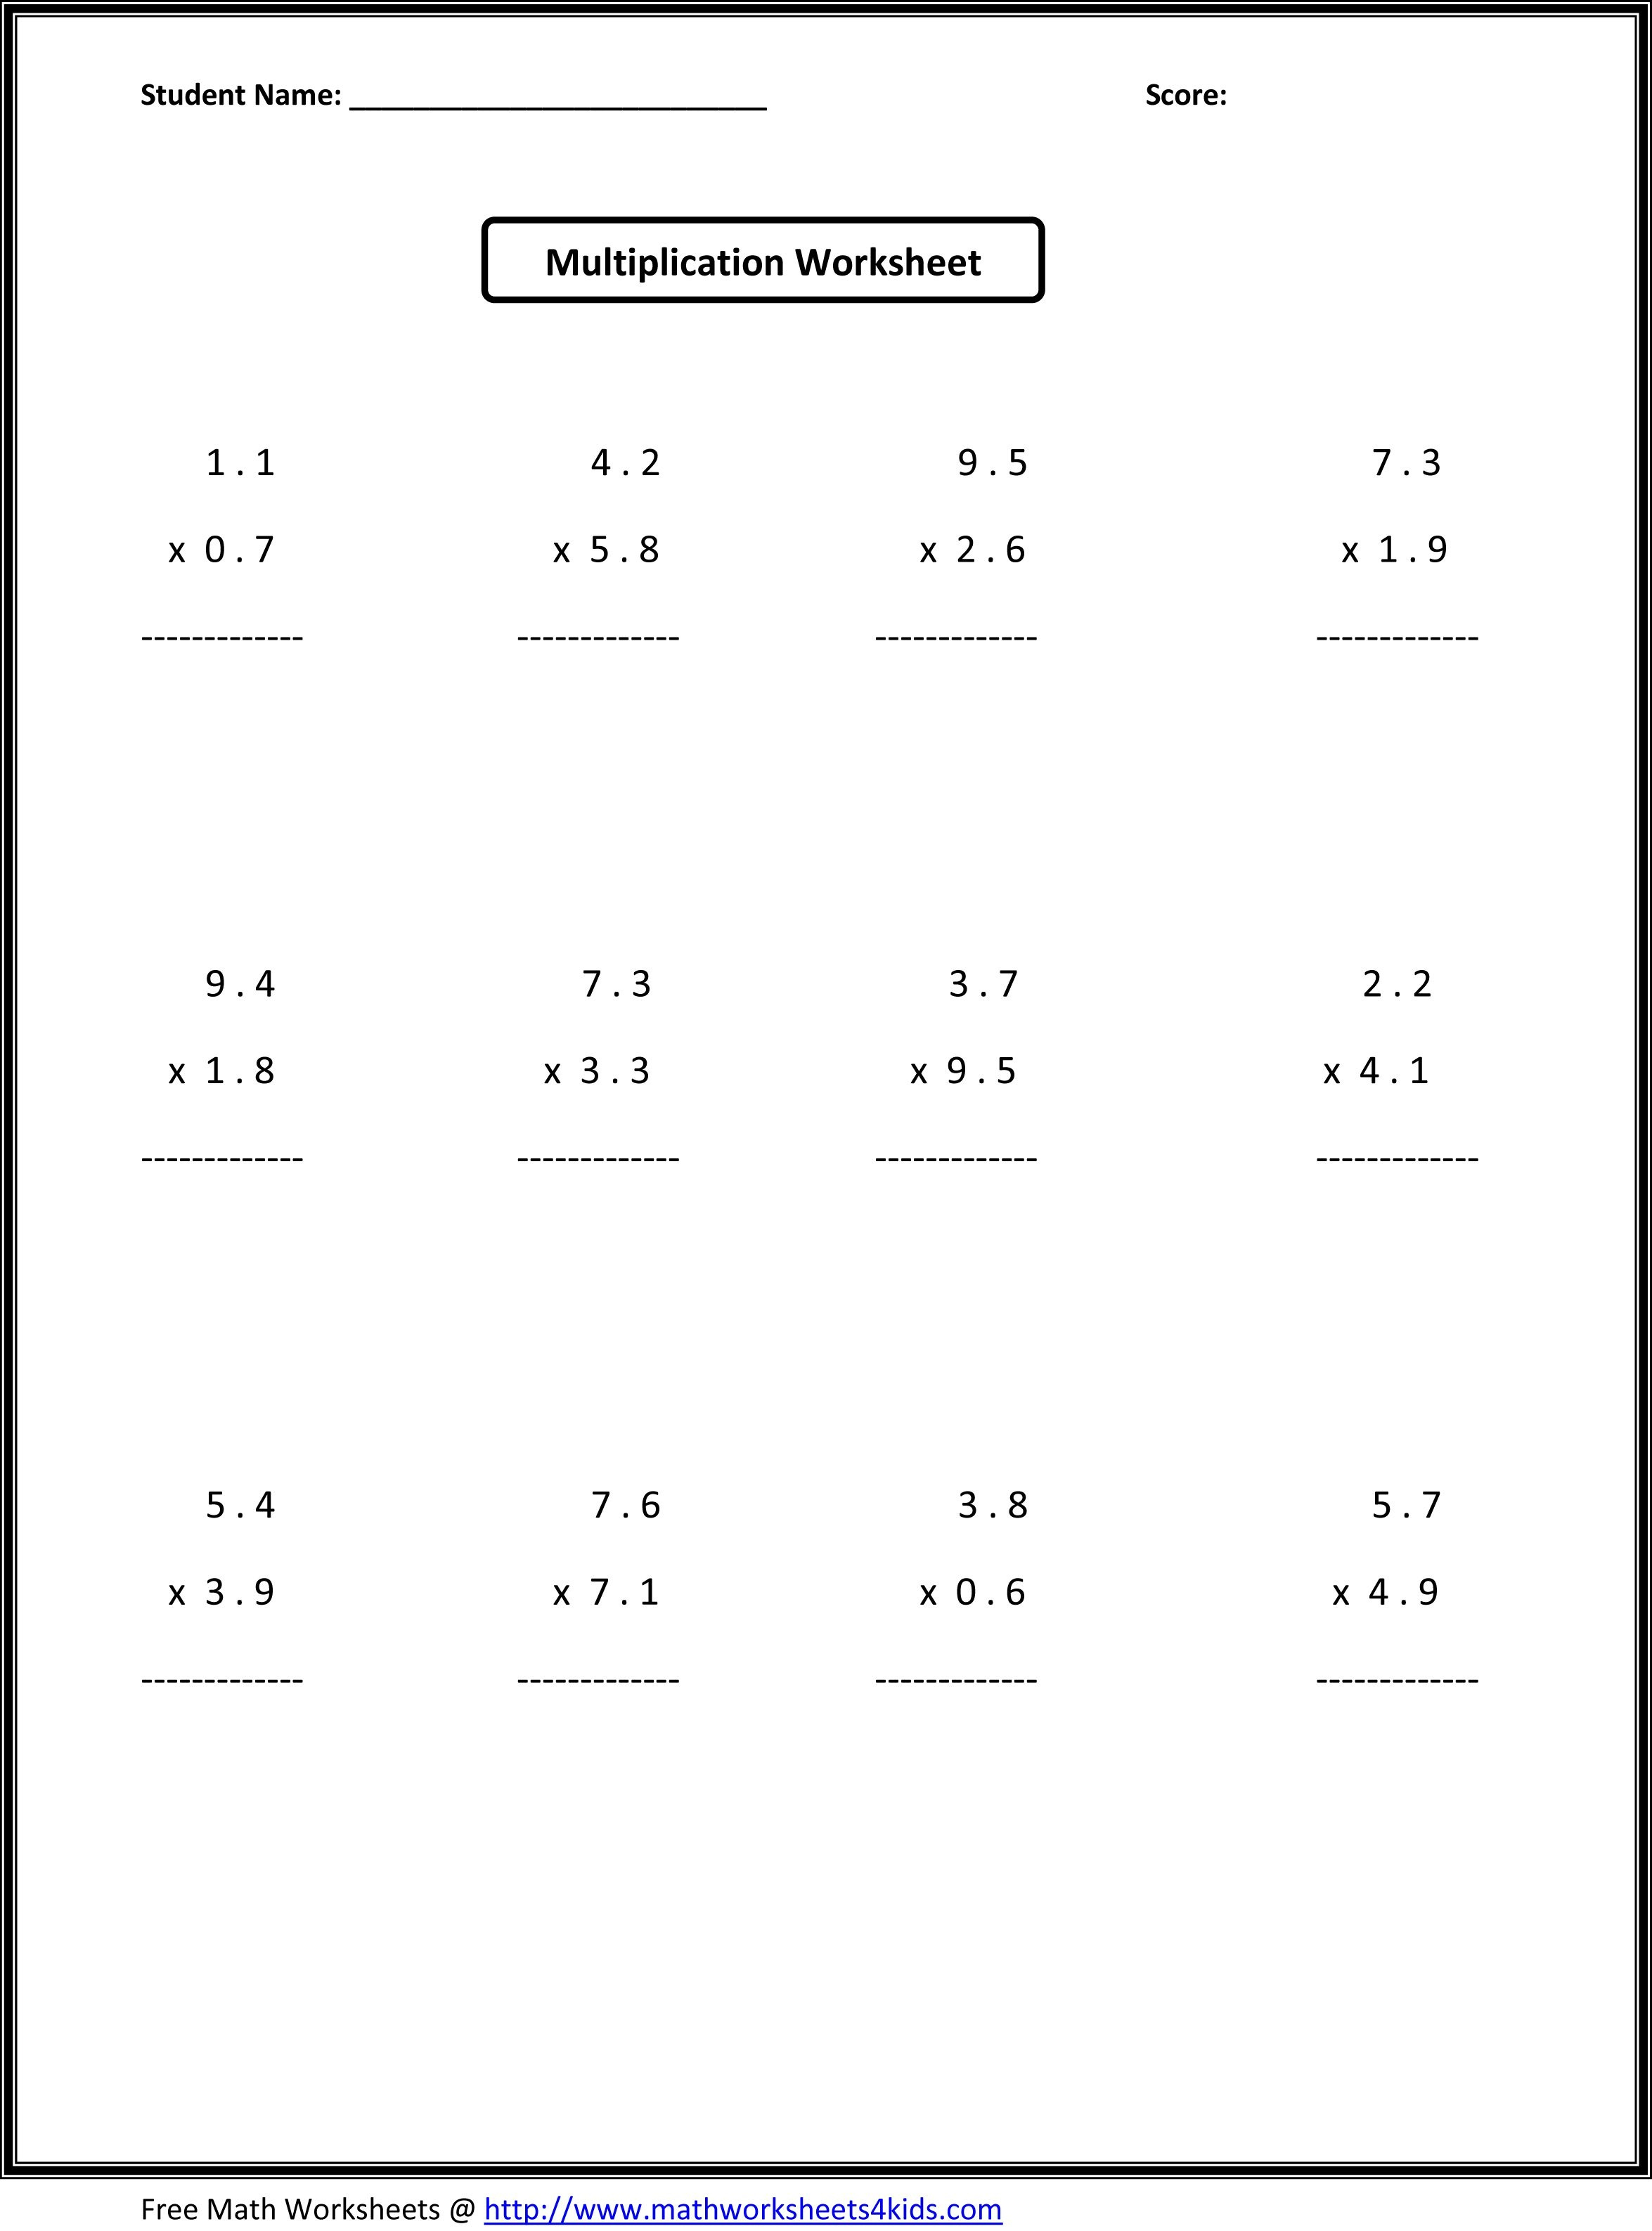 7Th Grade Math Worksheets | Value Worksheets Absolute Value - Free Printable 7Th Grade Math Worksheets